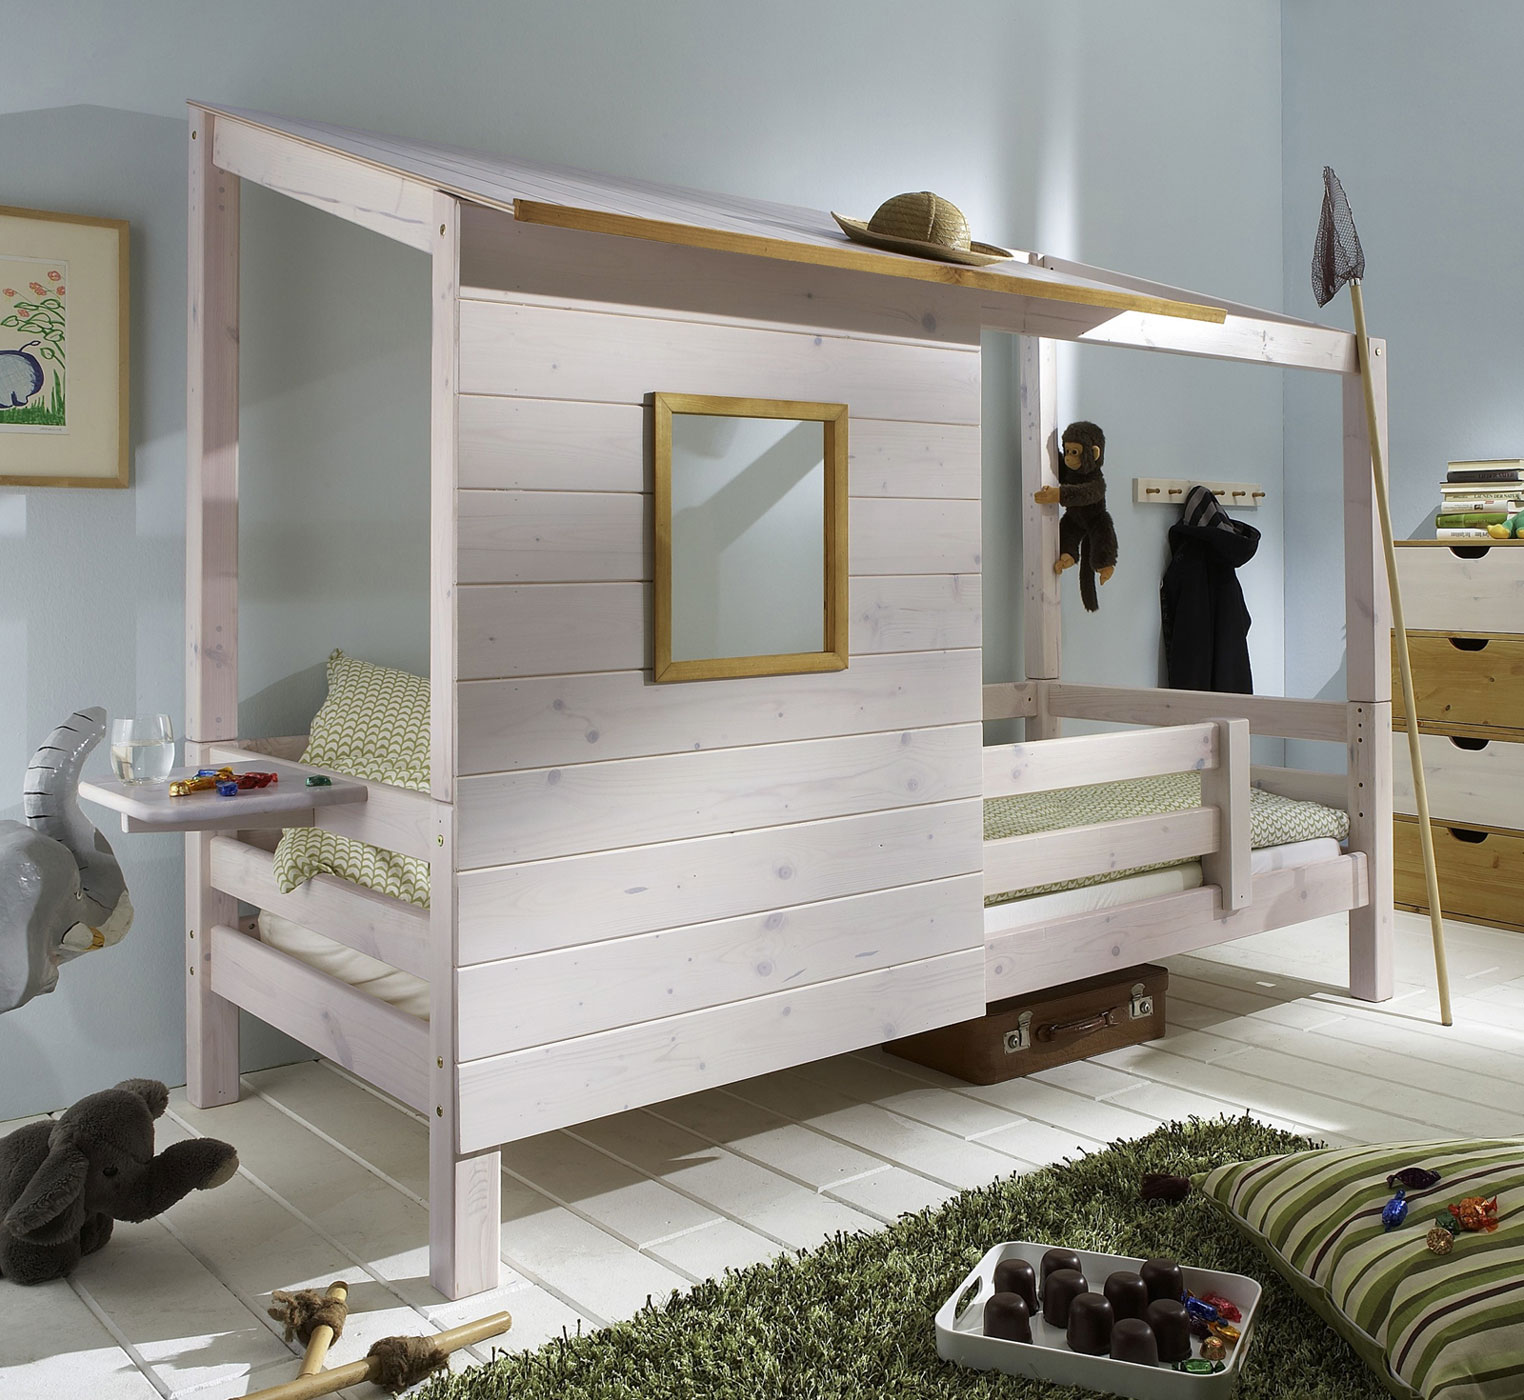 kinderbett spielhaus. Black Bedroom Furniture Sets. Home Design Ideas